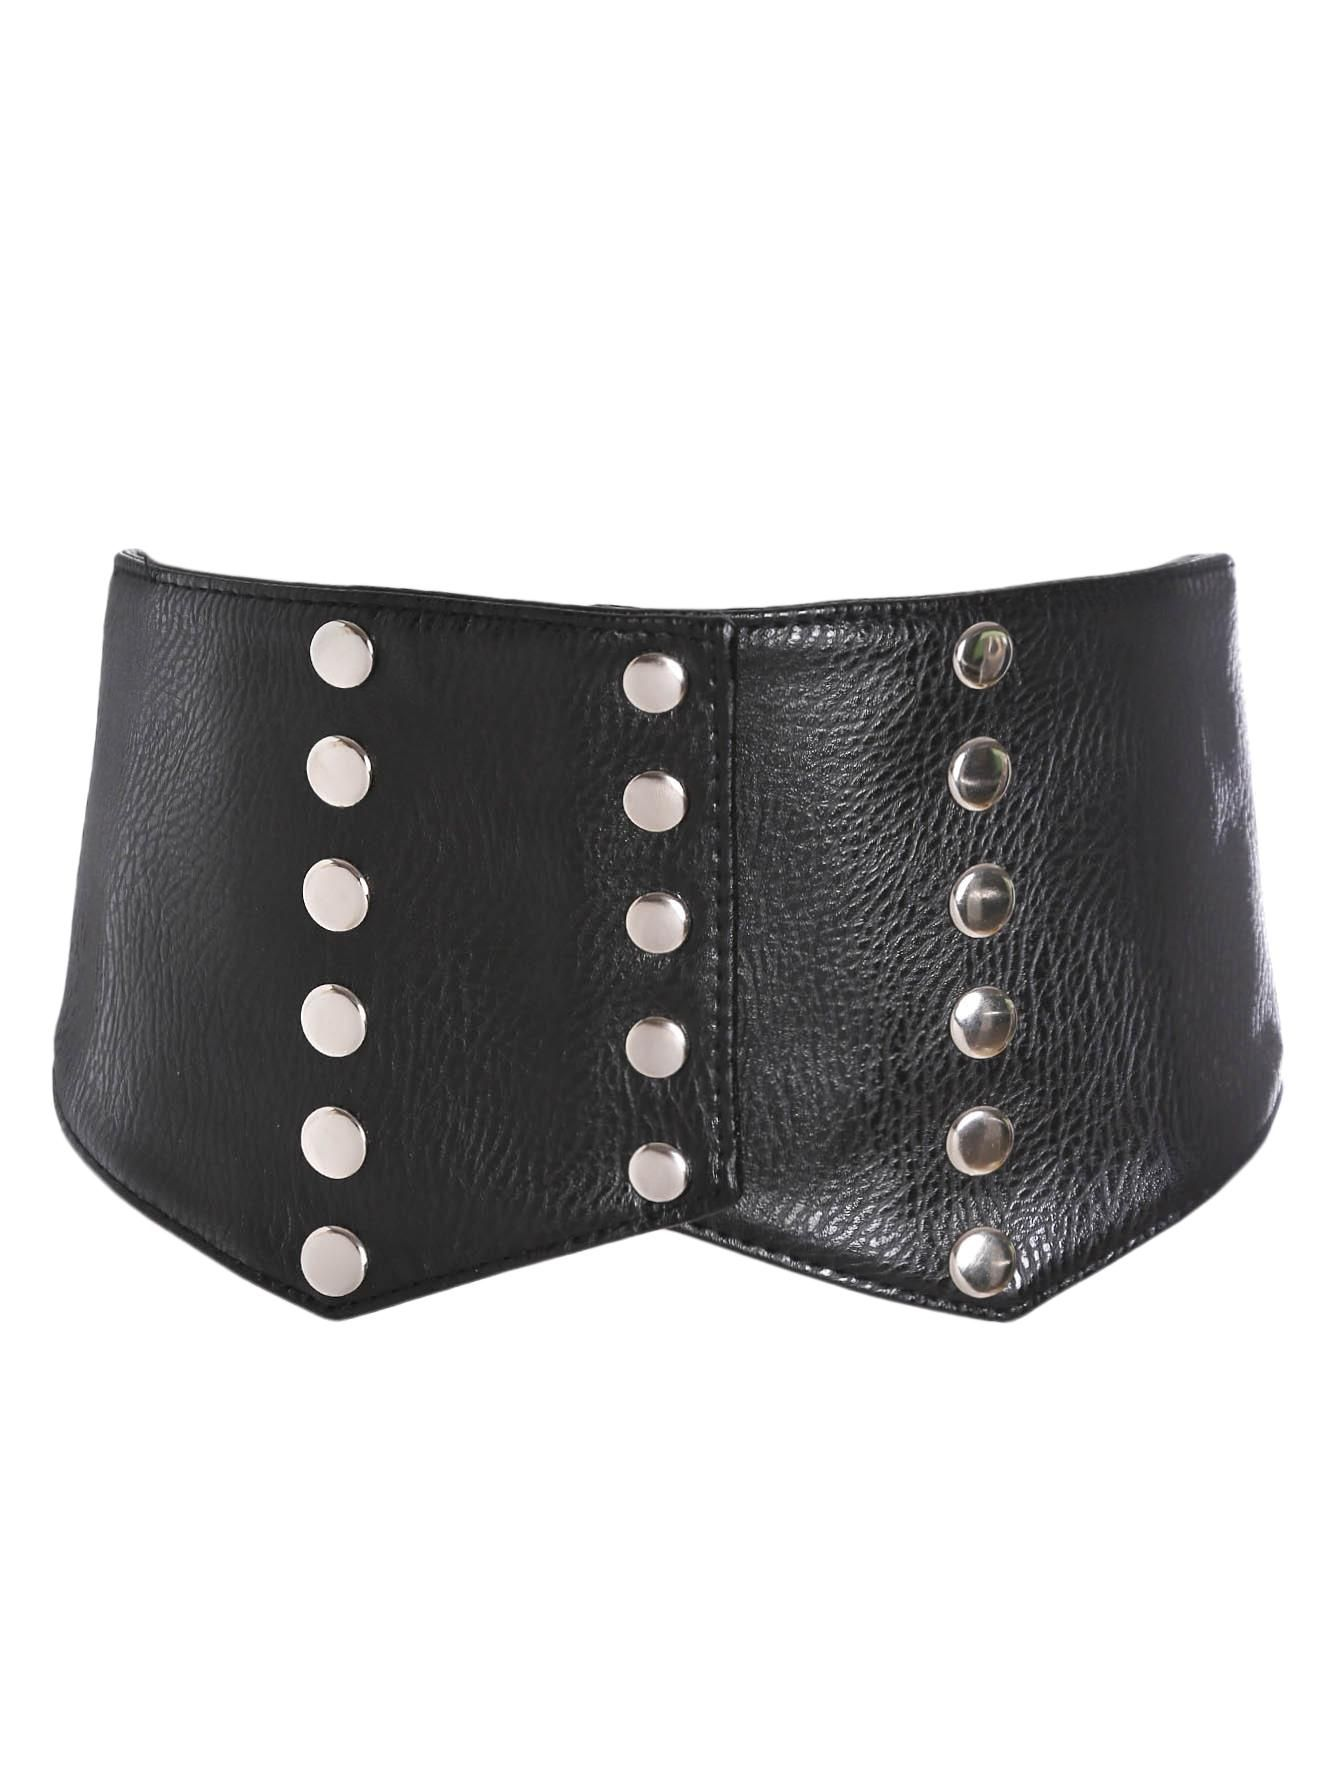 MakeMeChic - MAKEMECHIC Studded Design Croset Belt - AdoreWe.com